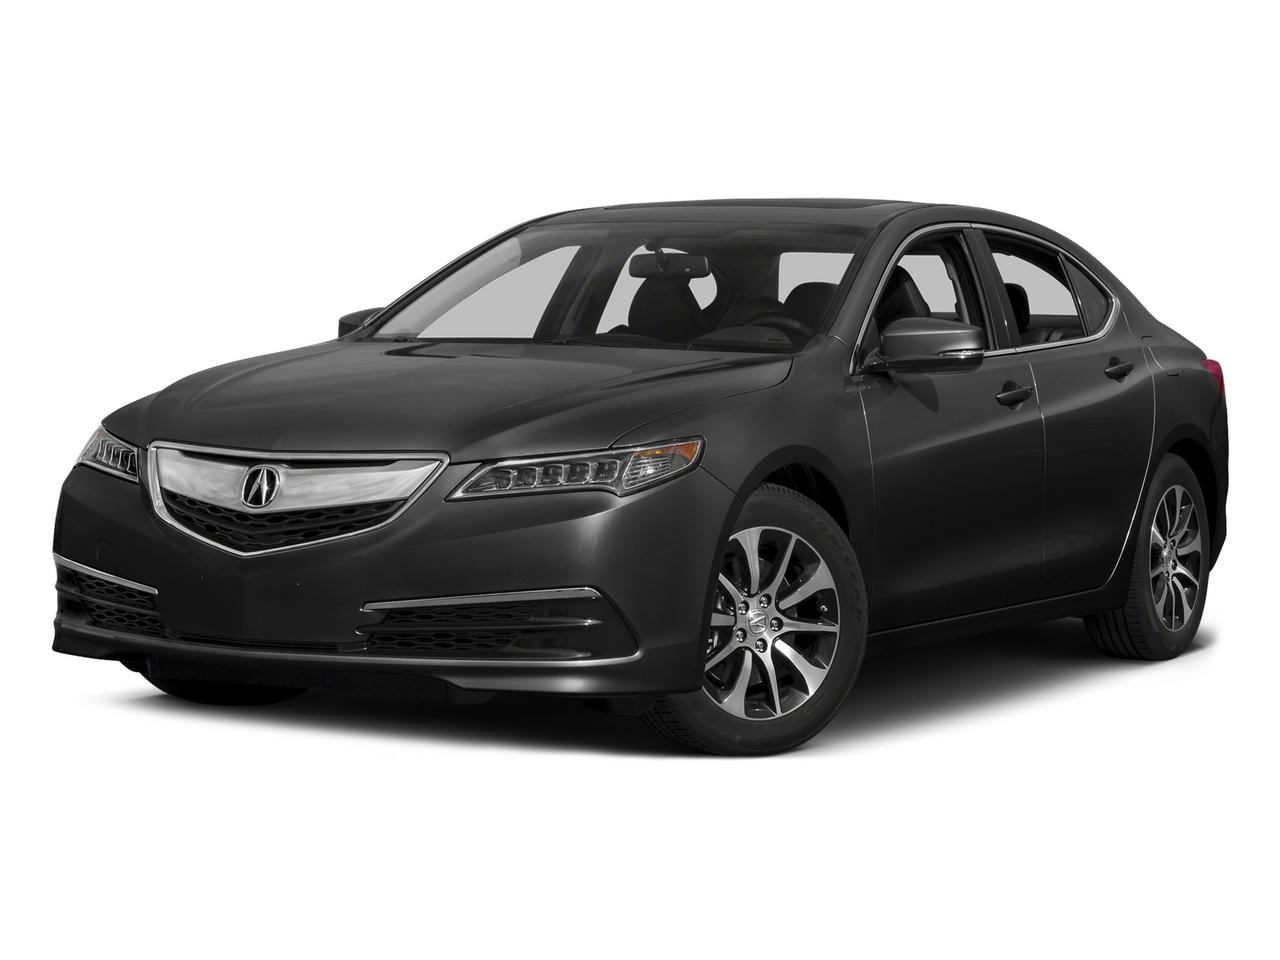 2015 Acura TLX Vehicle Photo in Moon Township, PA 15108